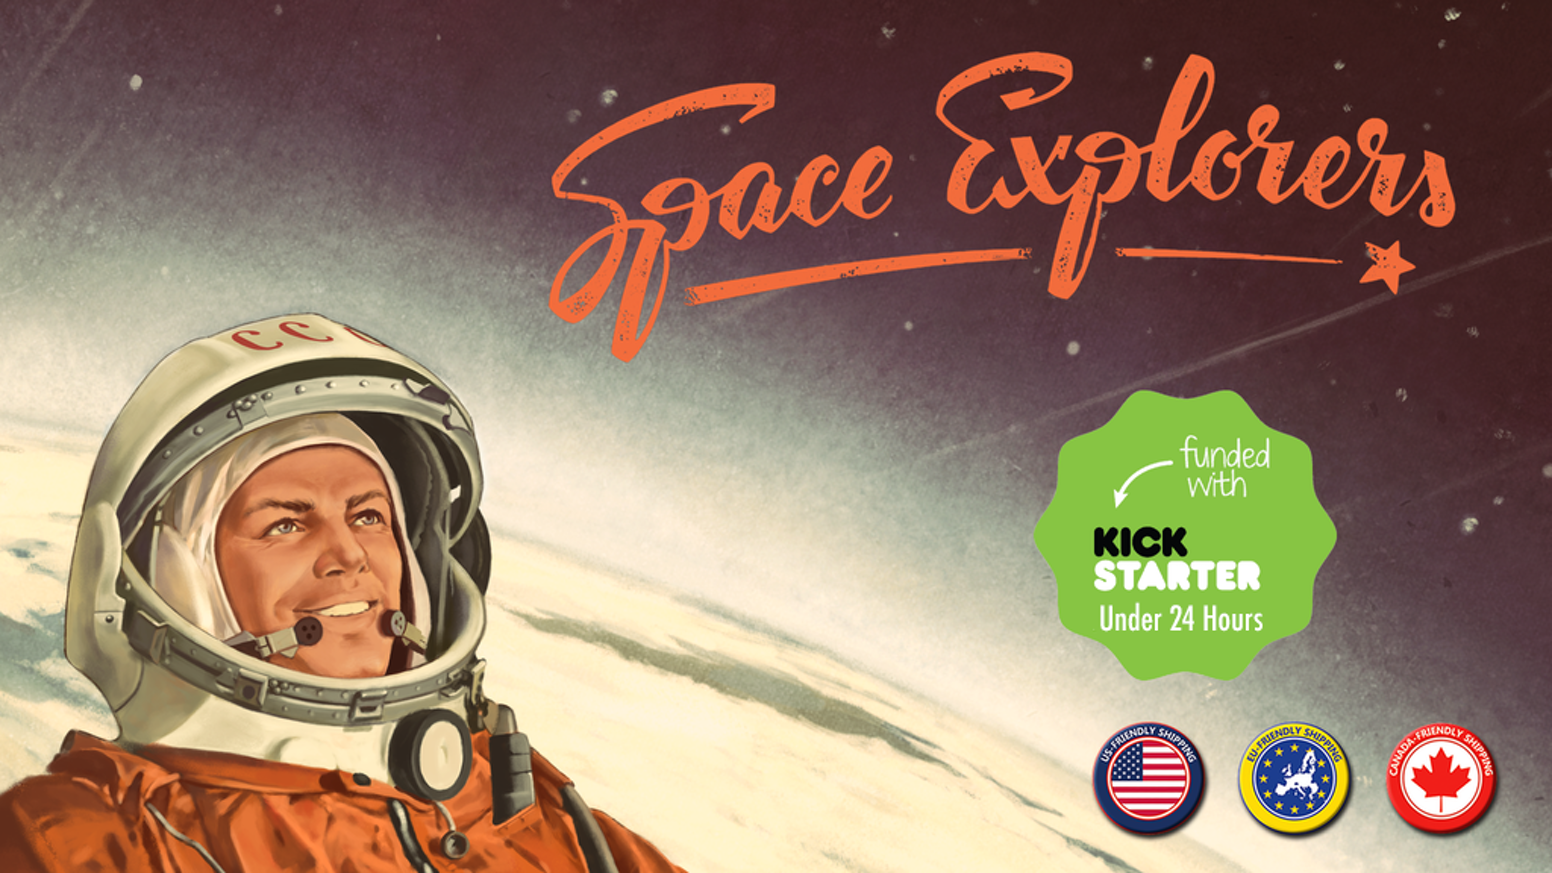 Build your team of specialists and launch historic spacecrafts into orbit! A retro themed space race game for 2-4 players.